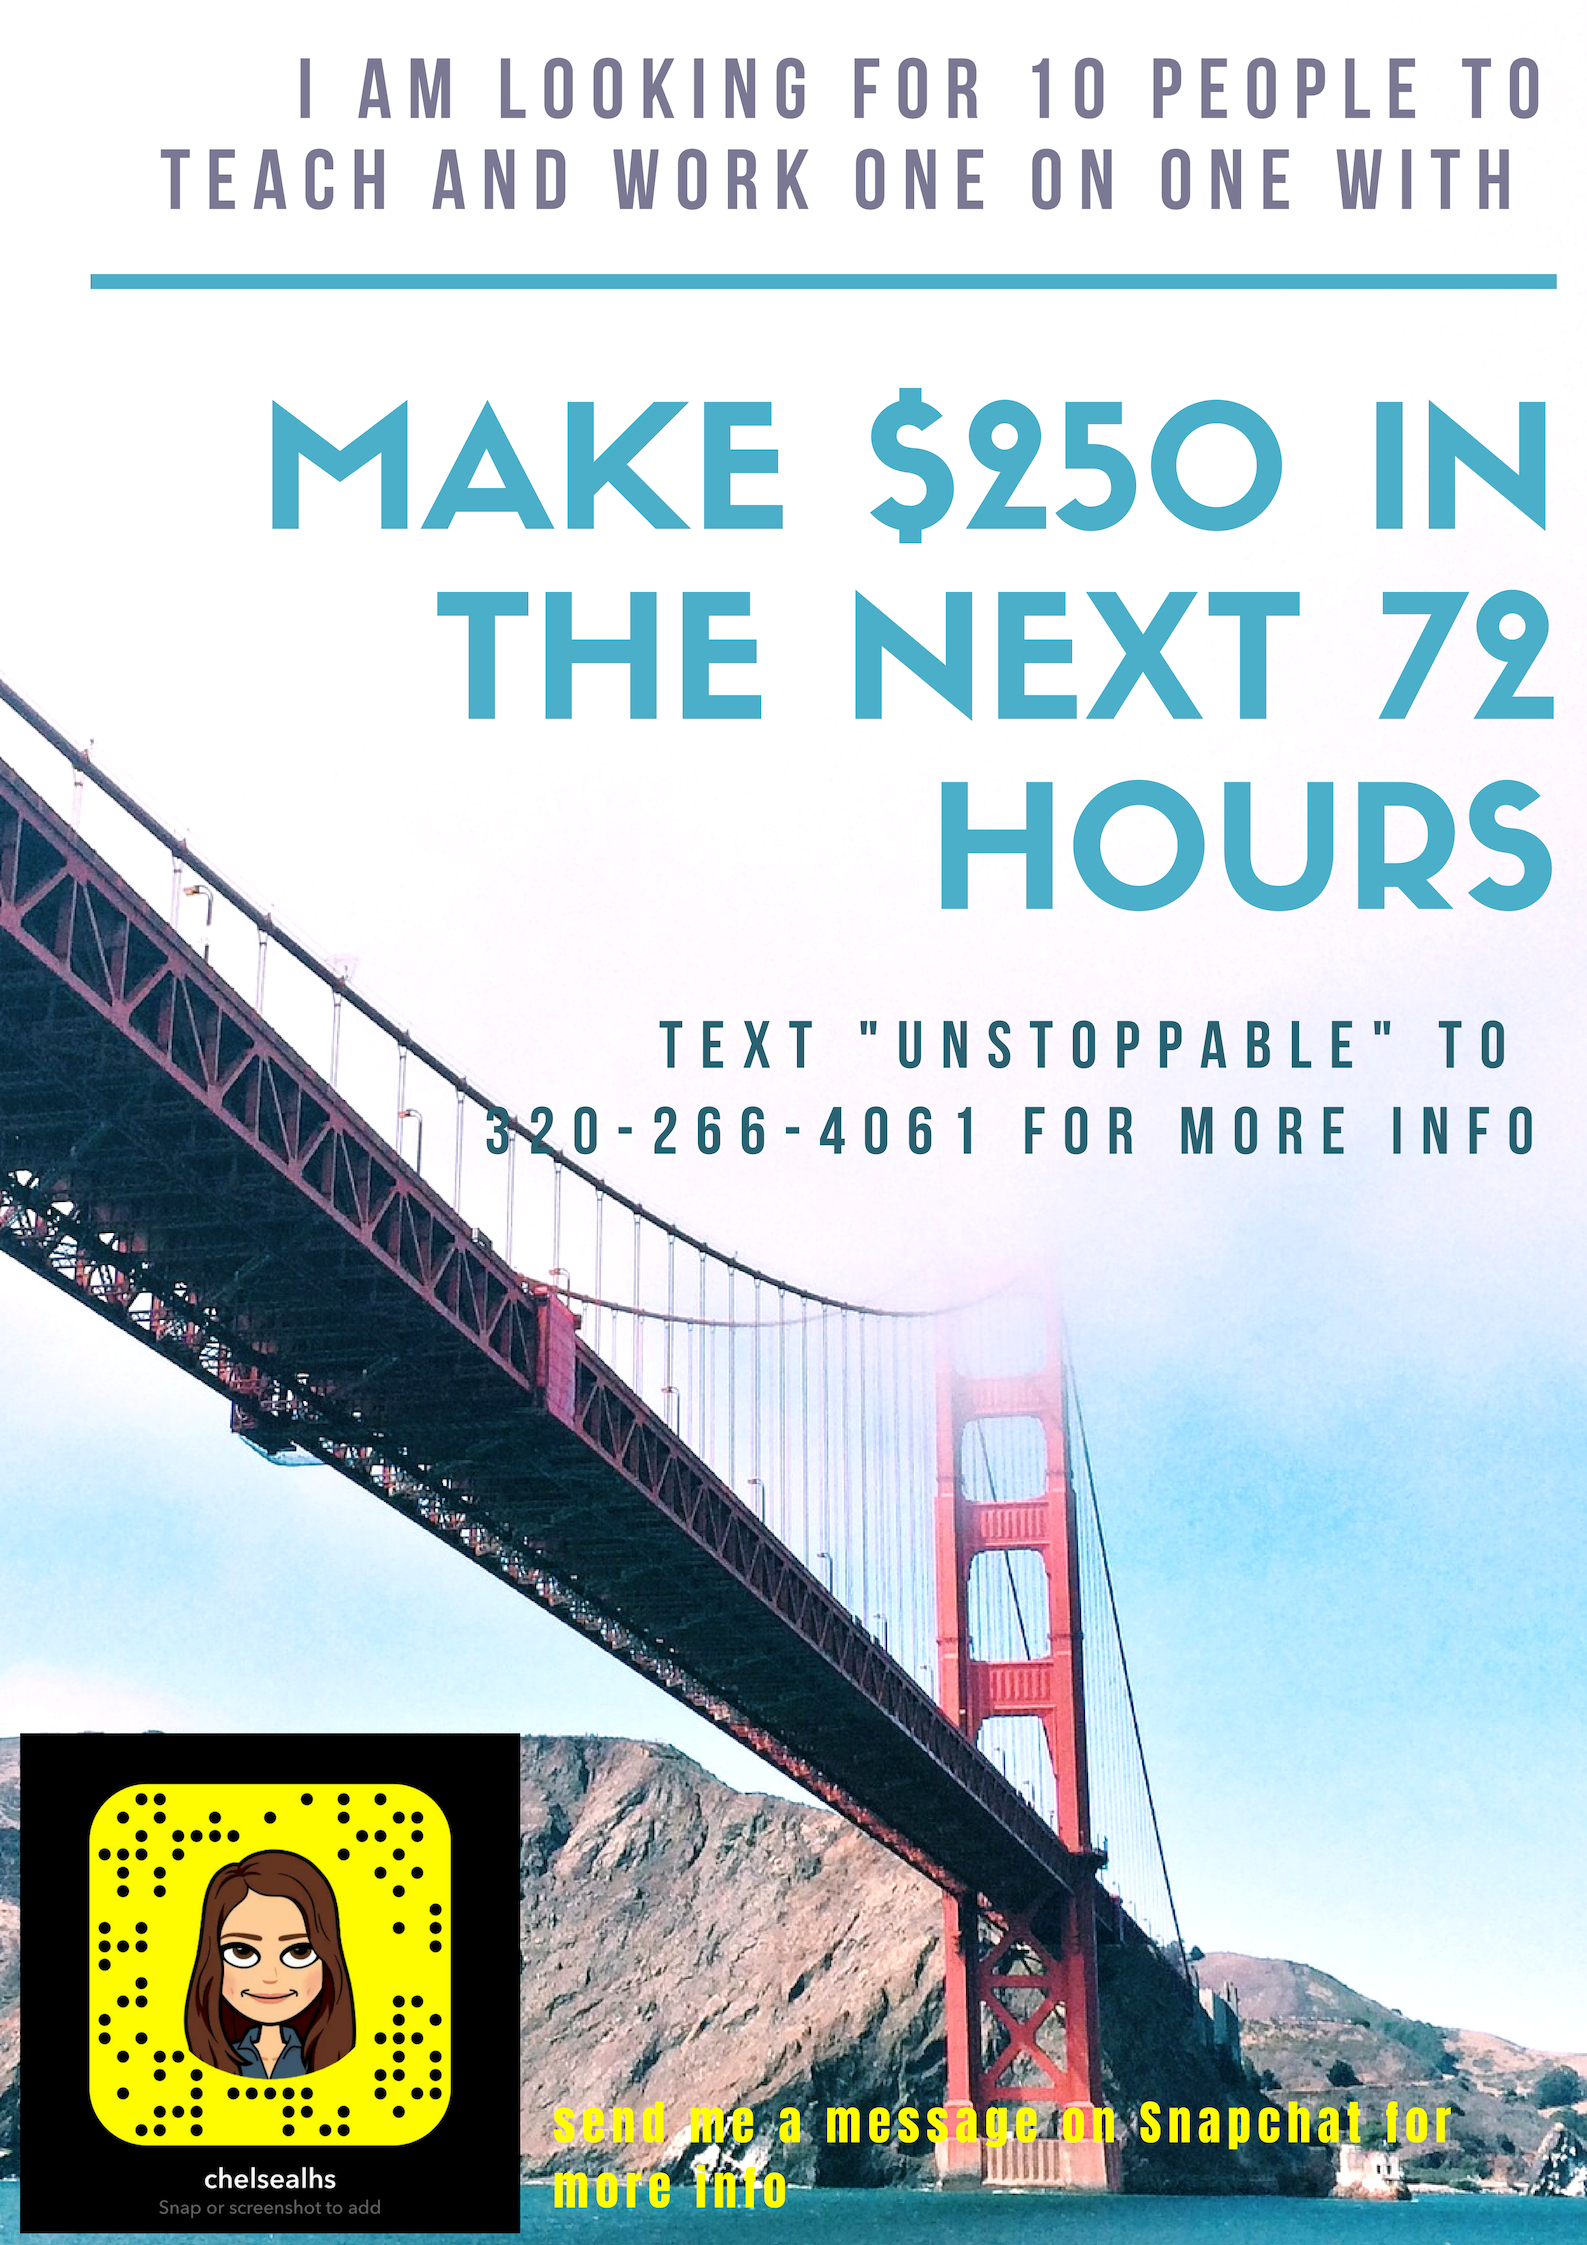 Instantly Pocket A $250 Commission Within The Next 72 Hours